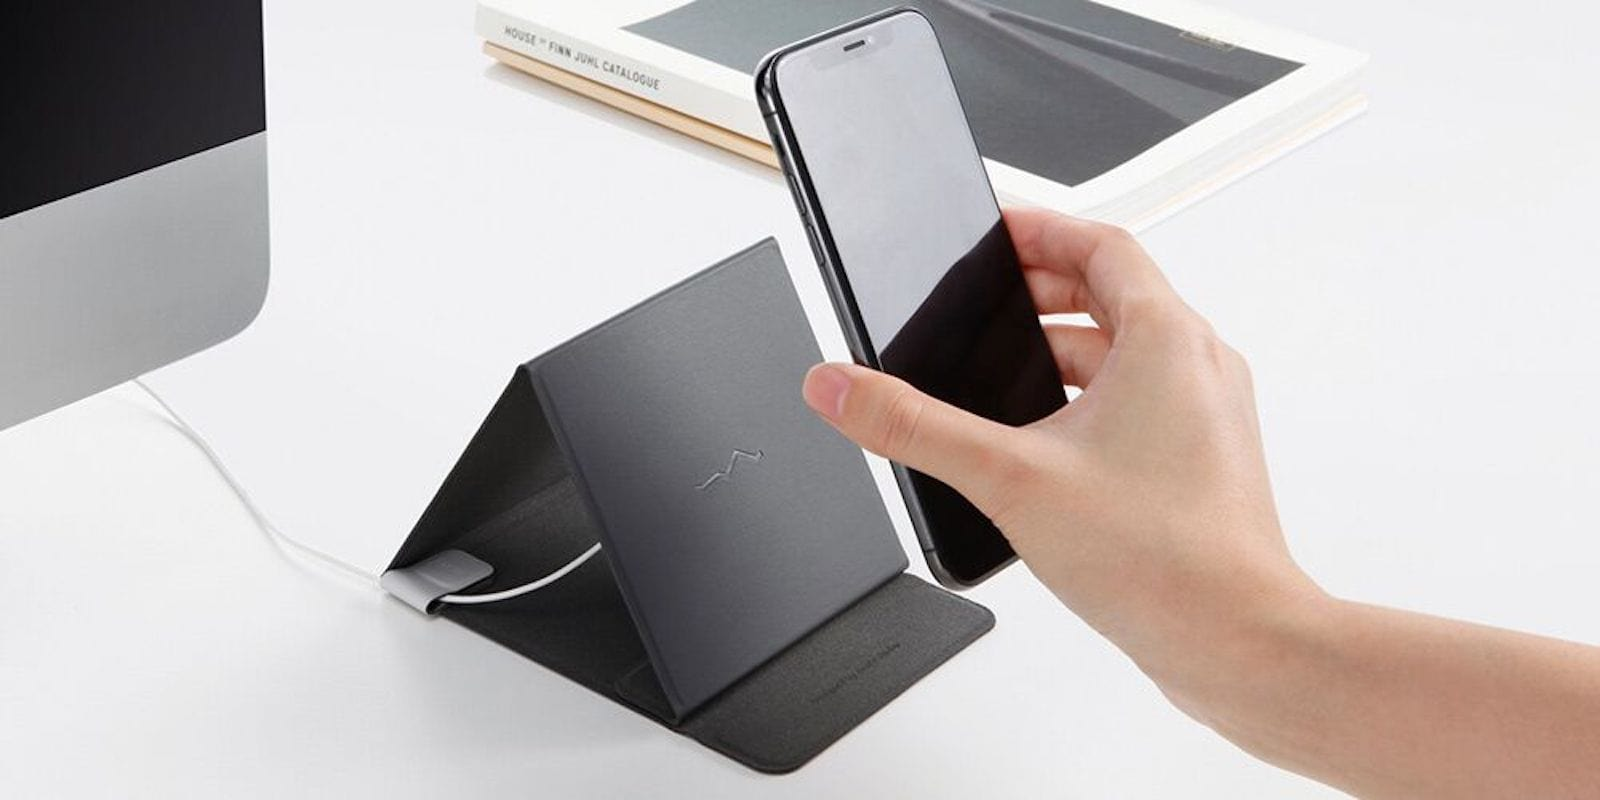 This wireless charger goes anywhere you do, with 3 different positions so you can keep using your device while it charges.